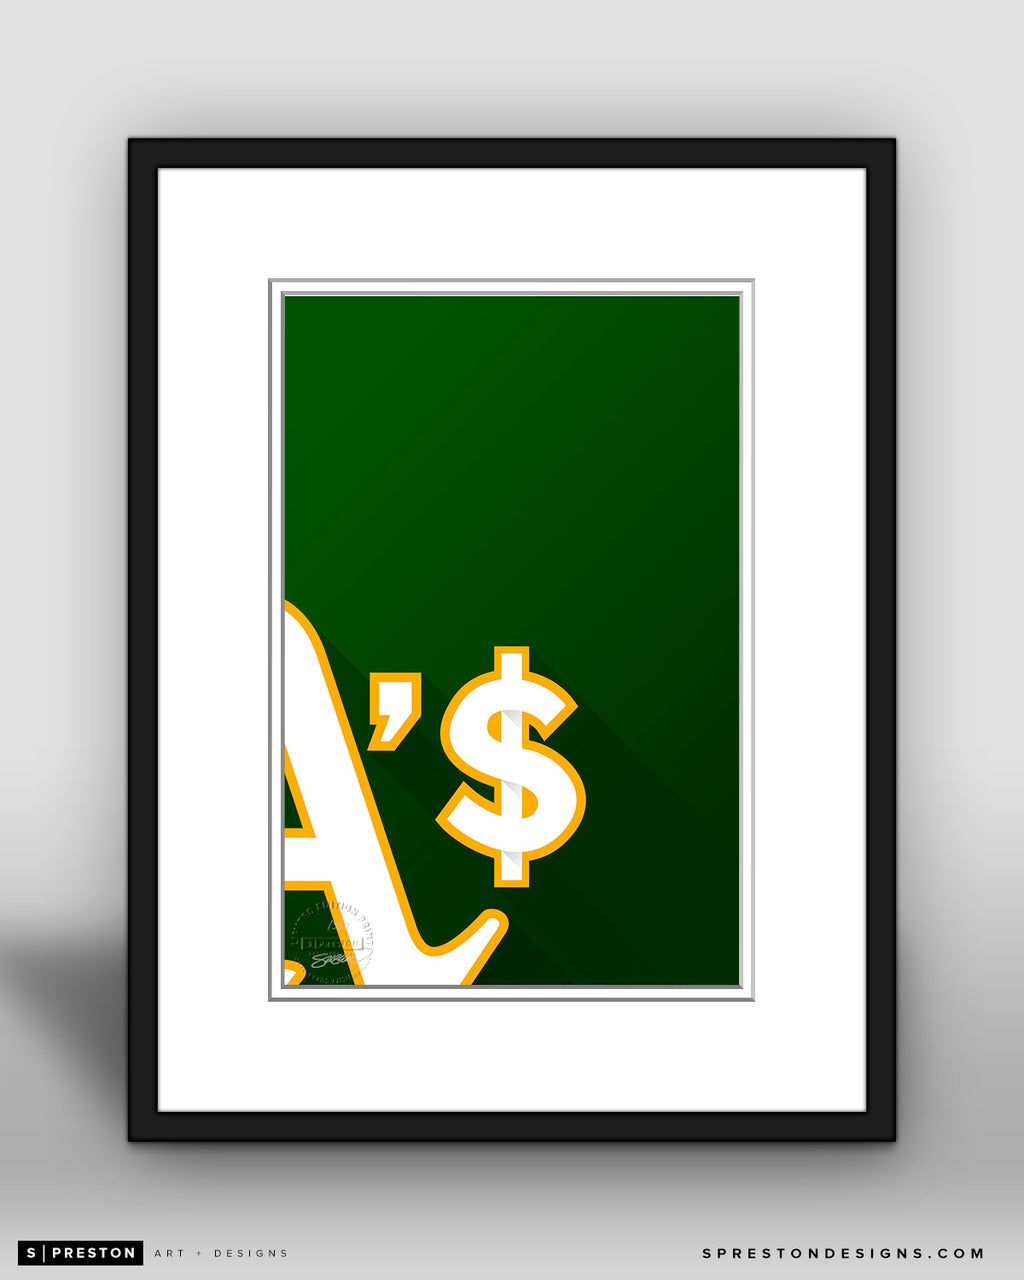 Minimalist Movies - Moneyball - Oakland Athletics - S. Preston